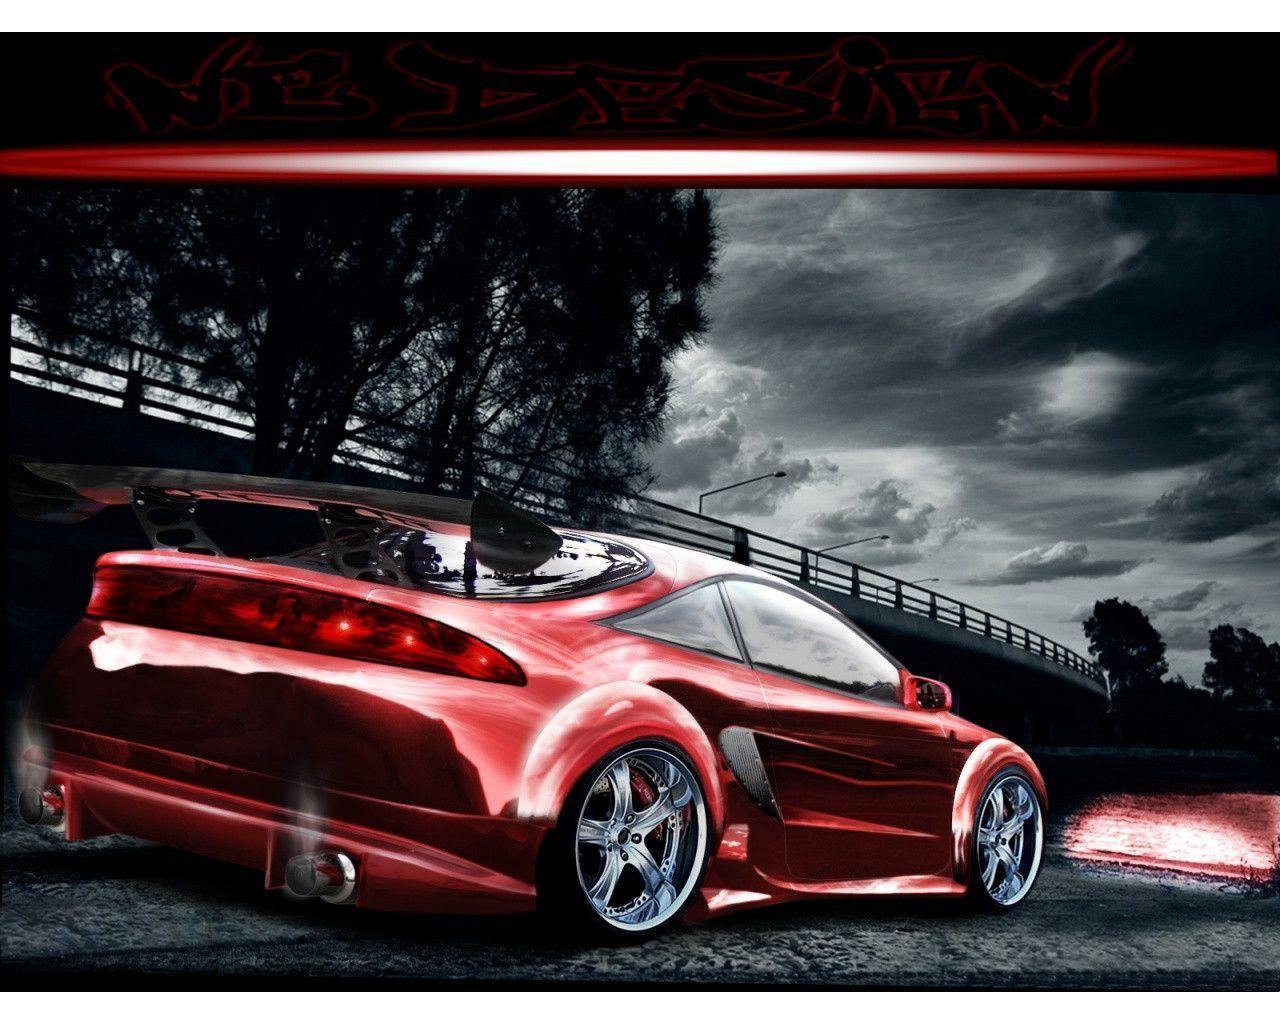 Image For > Mitsubishi Eclipse Wallpapers